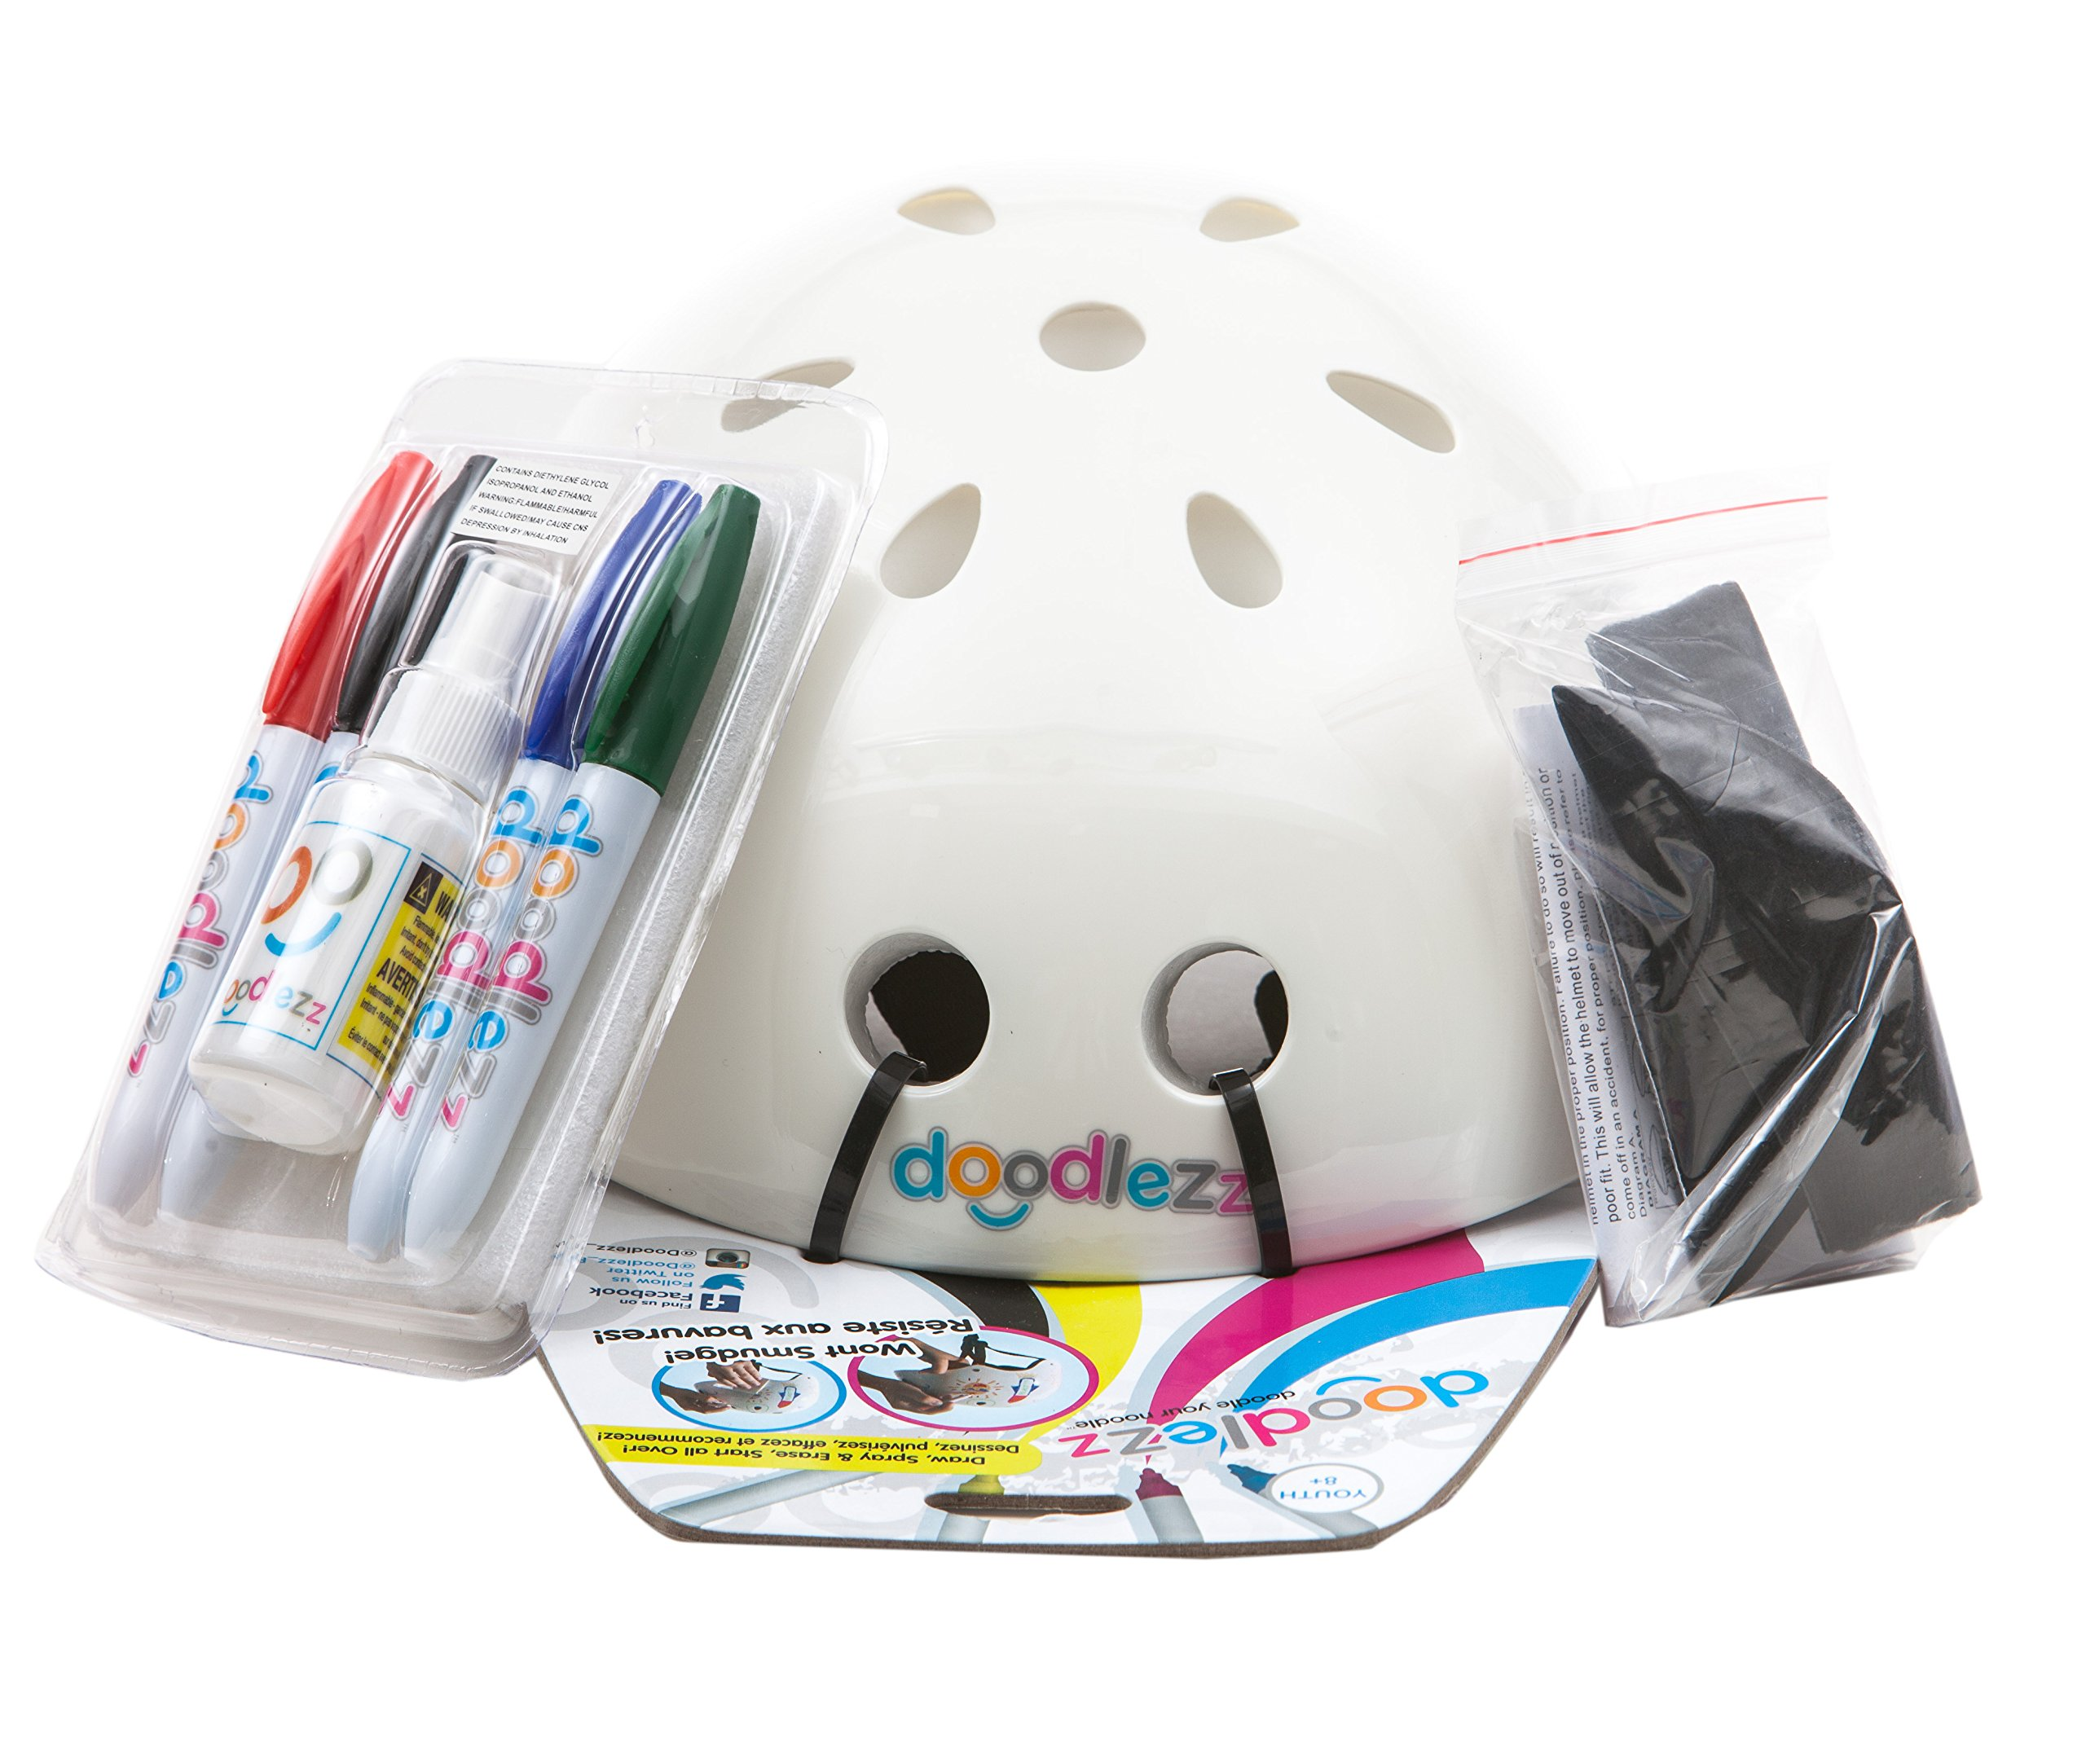 Doodlezz Draw Spray & Erase Skateboard Helmet for Youth 8 years and up, Includes Set of Erasable Markers for Drawing on the Helmet